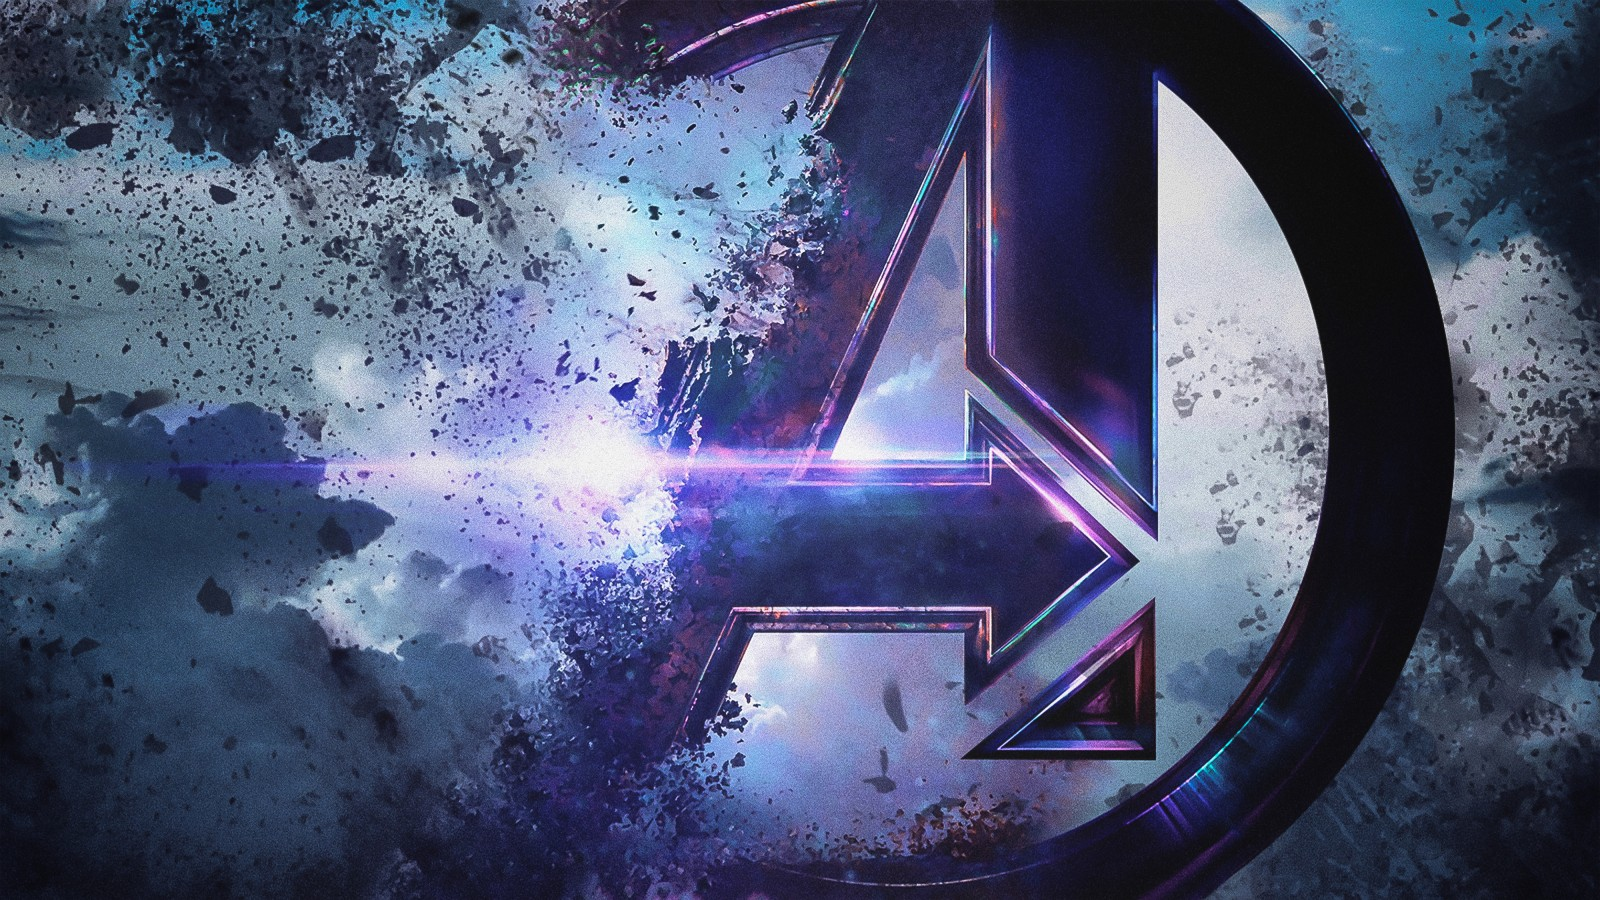 Download Cars Wallpapers For Windows 7 Avengers Endgame 4k Wallpapers Hd Wallpapers Id 28047